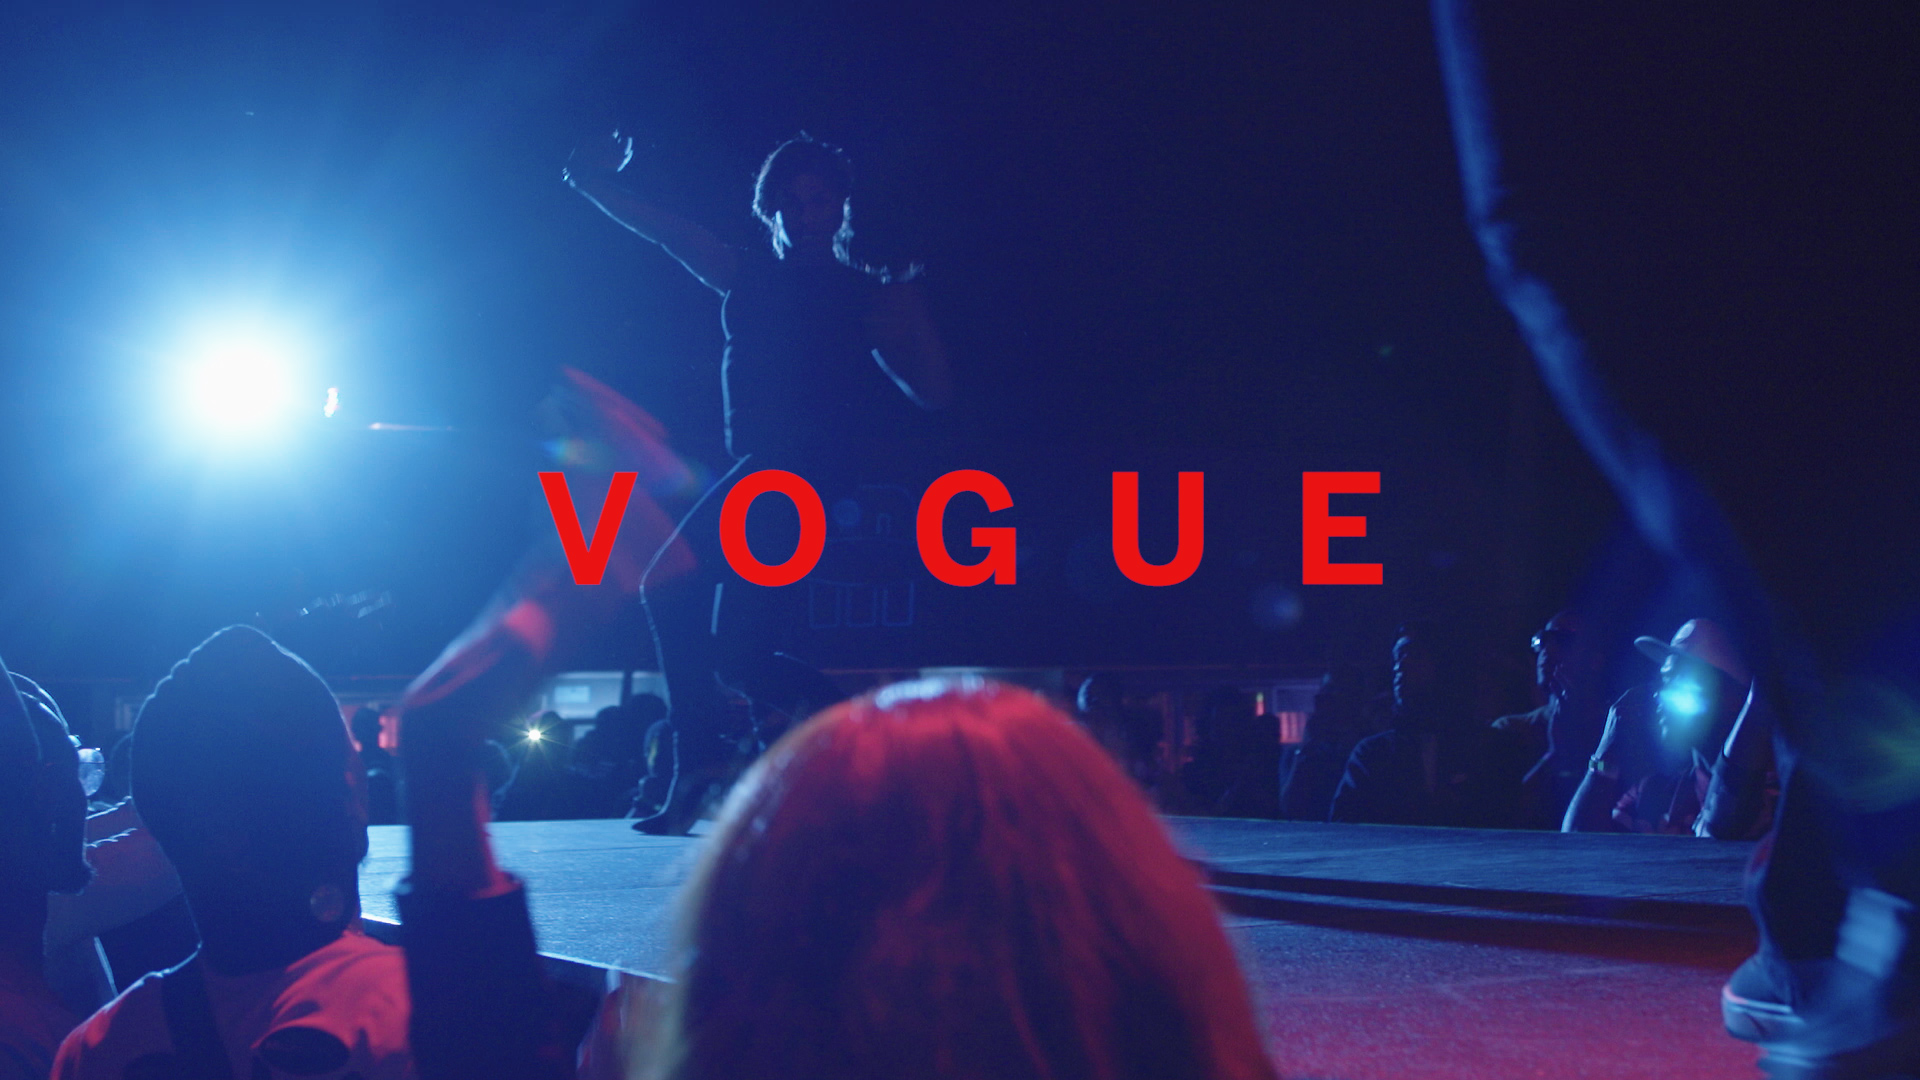 Vogue in Detroit